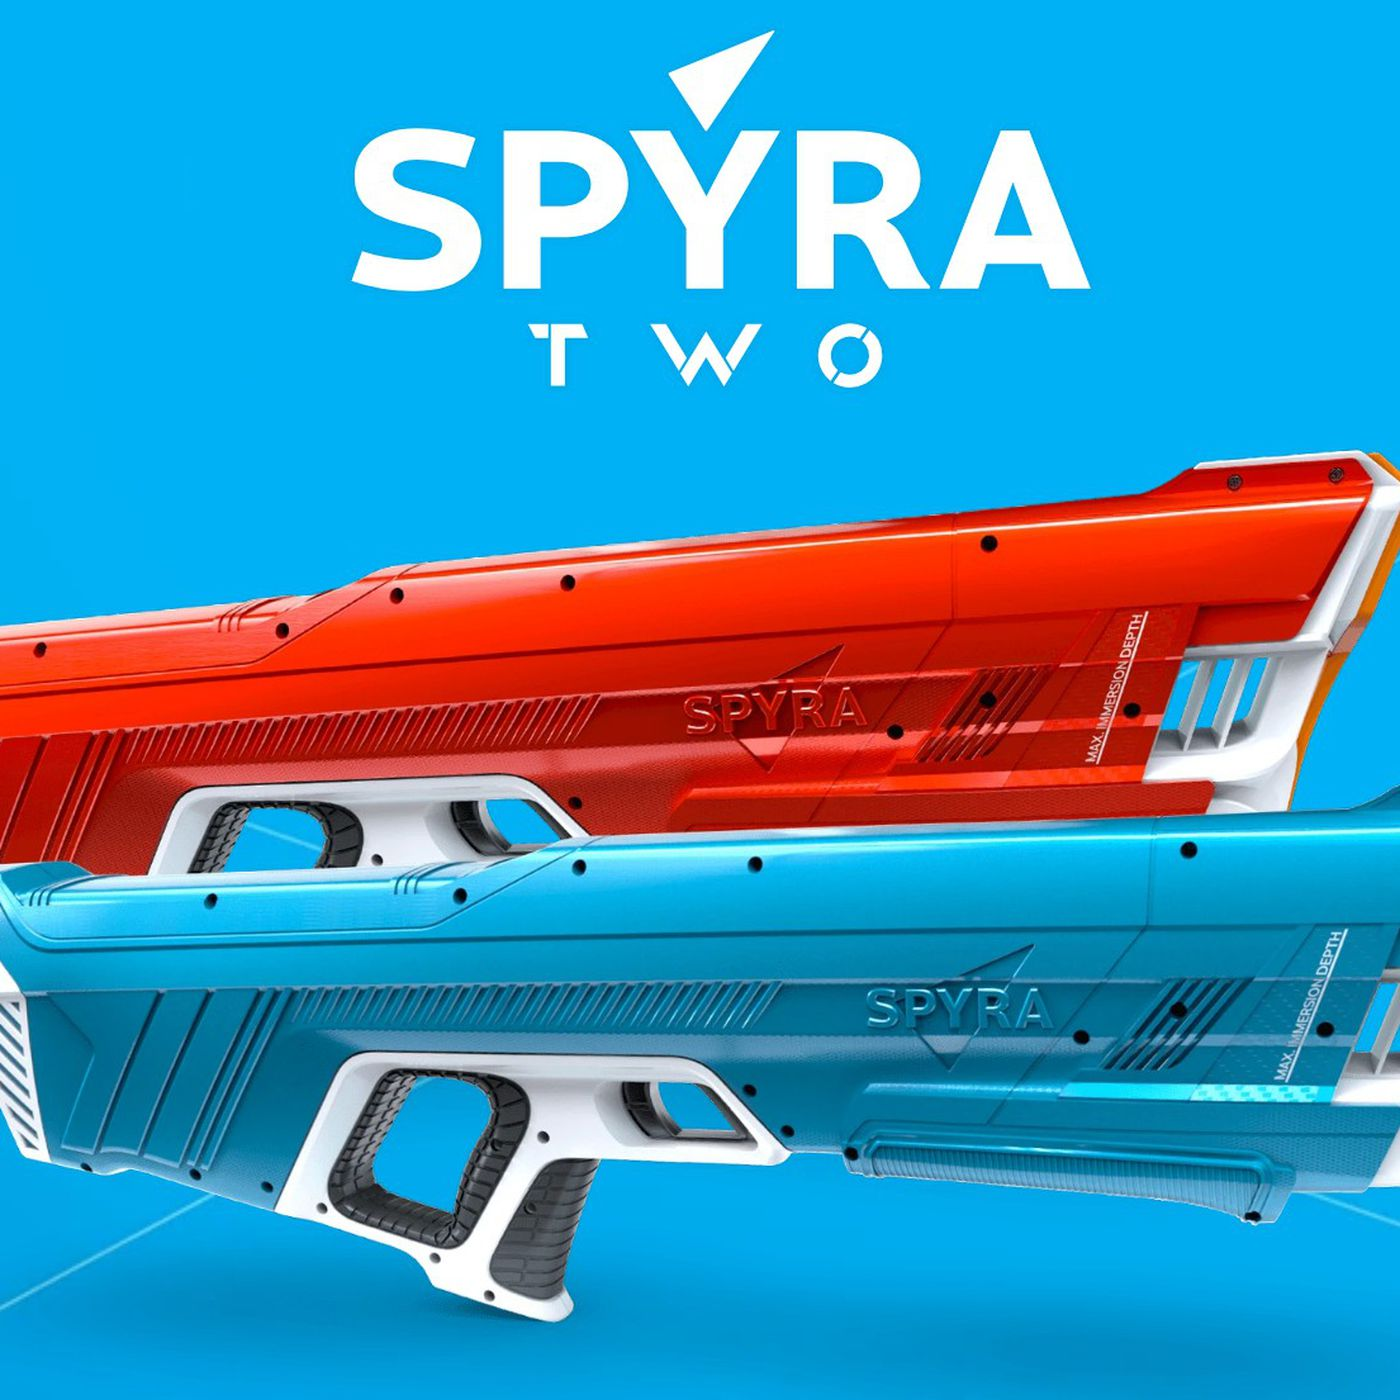 Spyra Has A New Digital Water Blaster That Looks Like It Ll Blow The Original Away The Verge